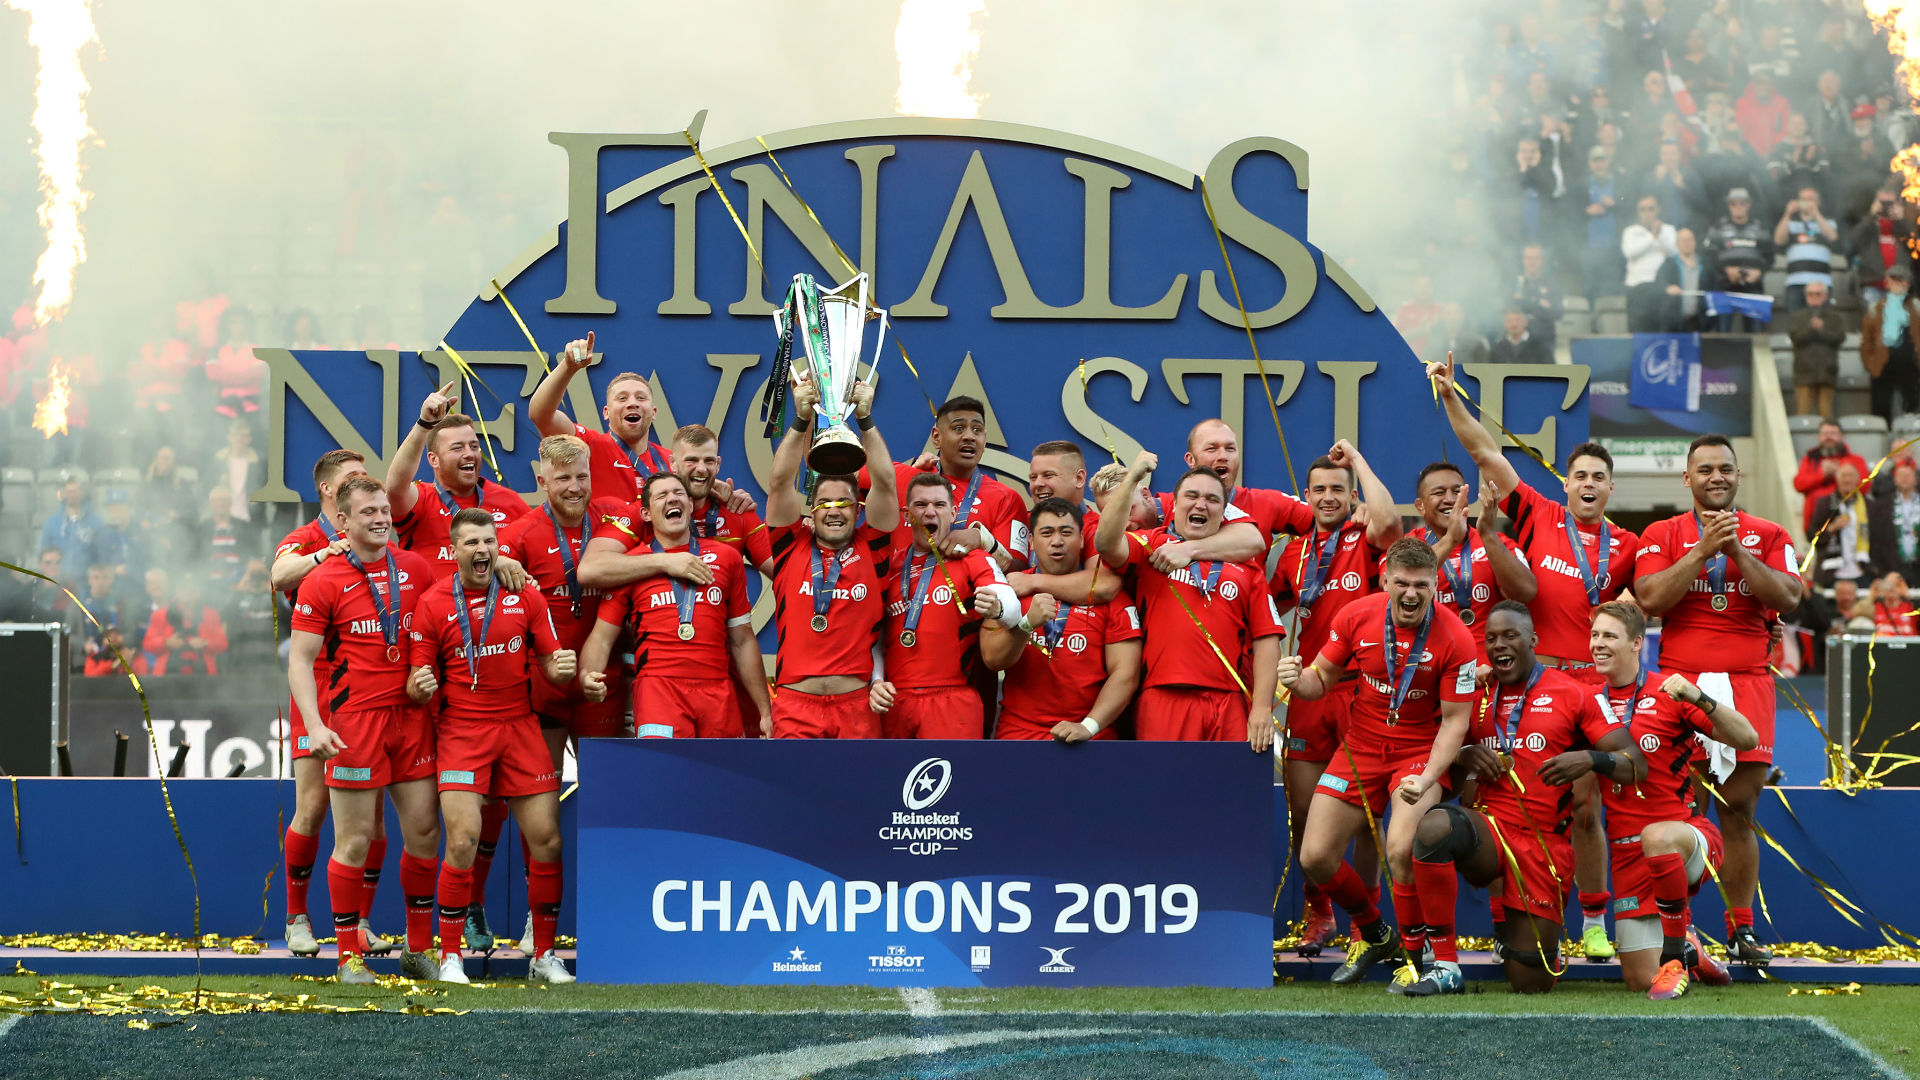 Champions Cup format altered due to COVID-19 crisis